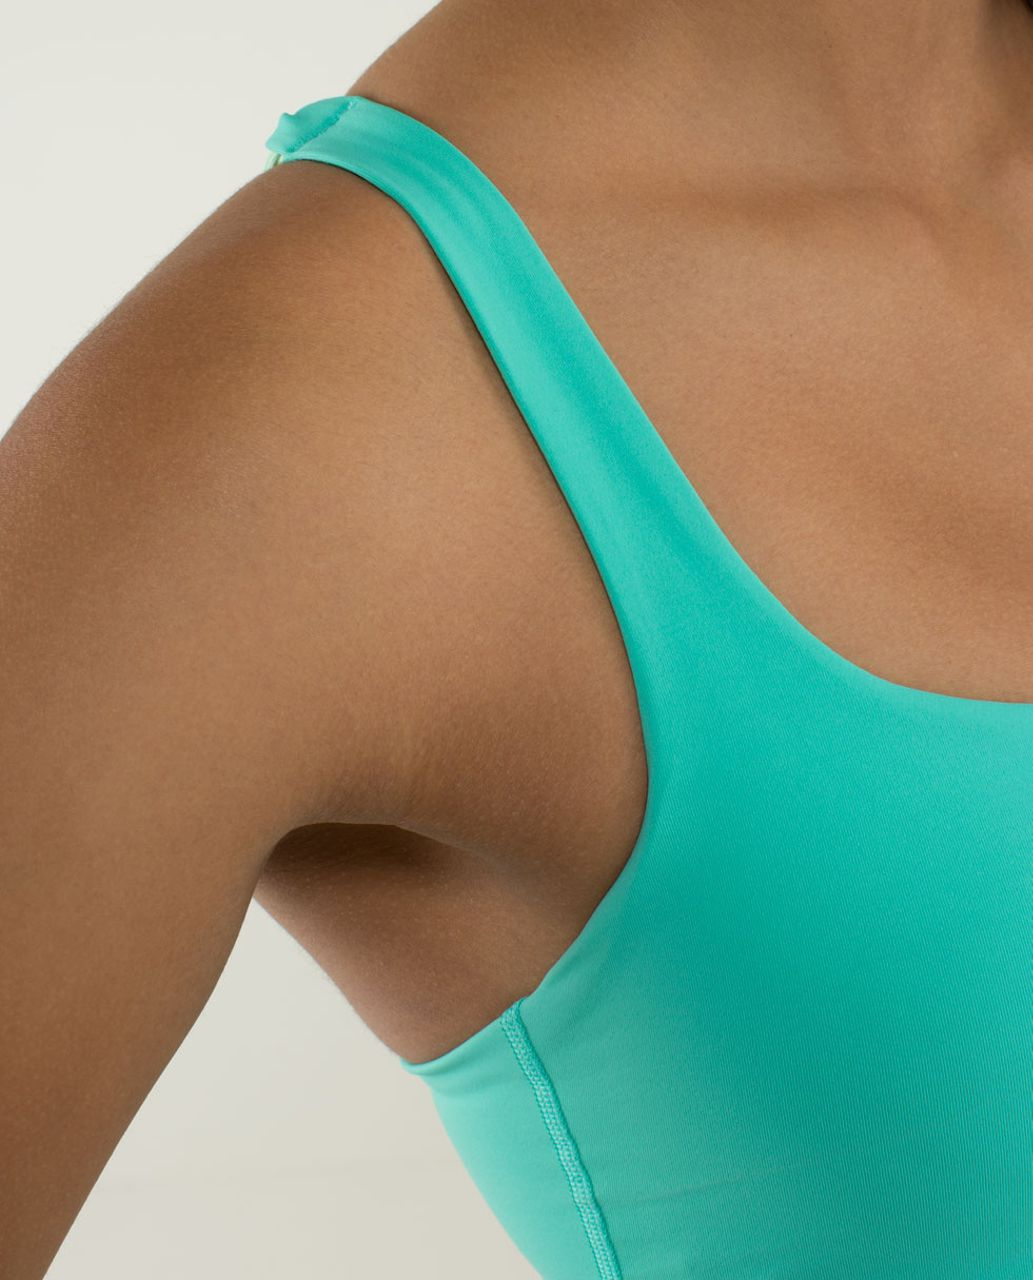 Lululemon Free To Be Bra - Bali Breeze / Fresh Teal